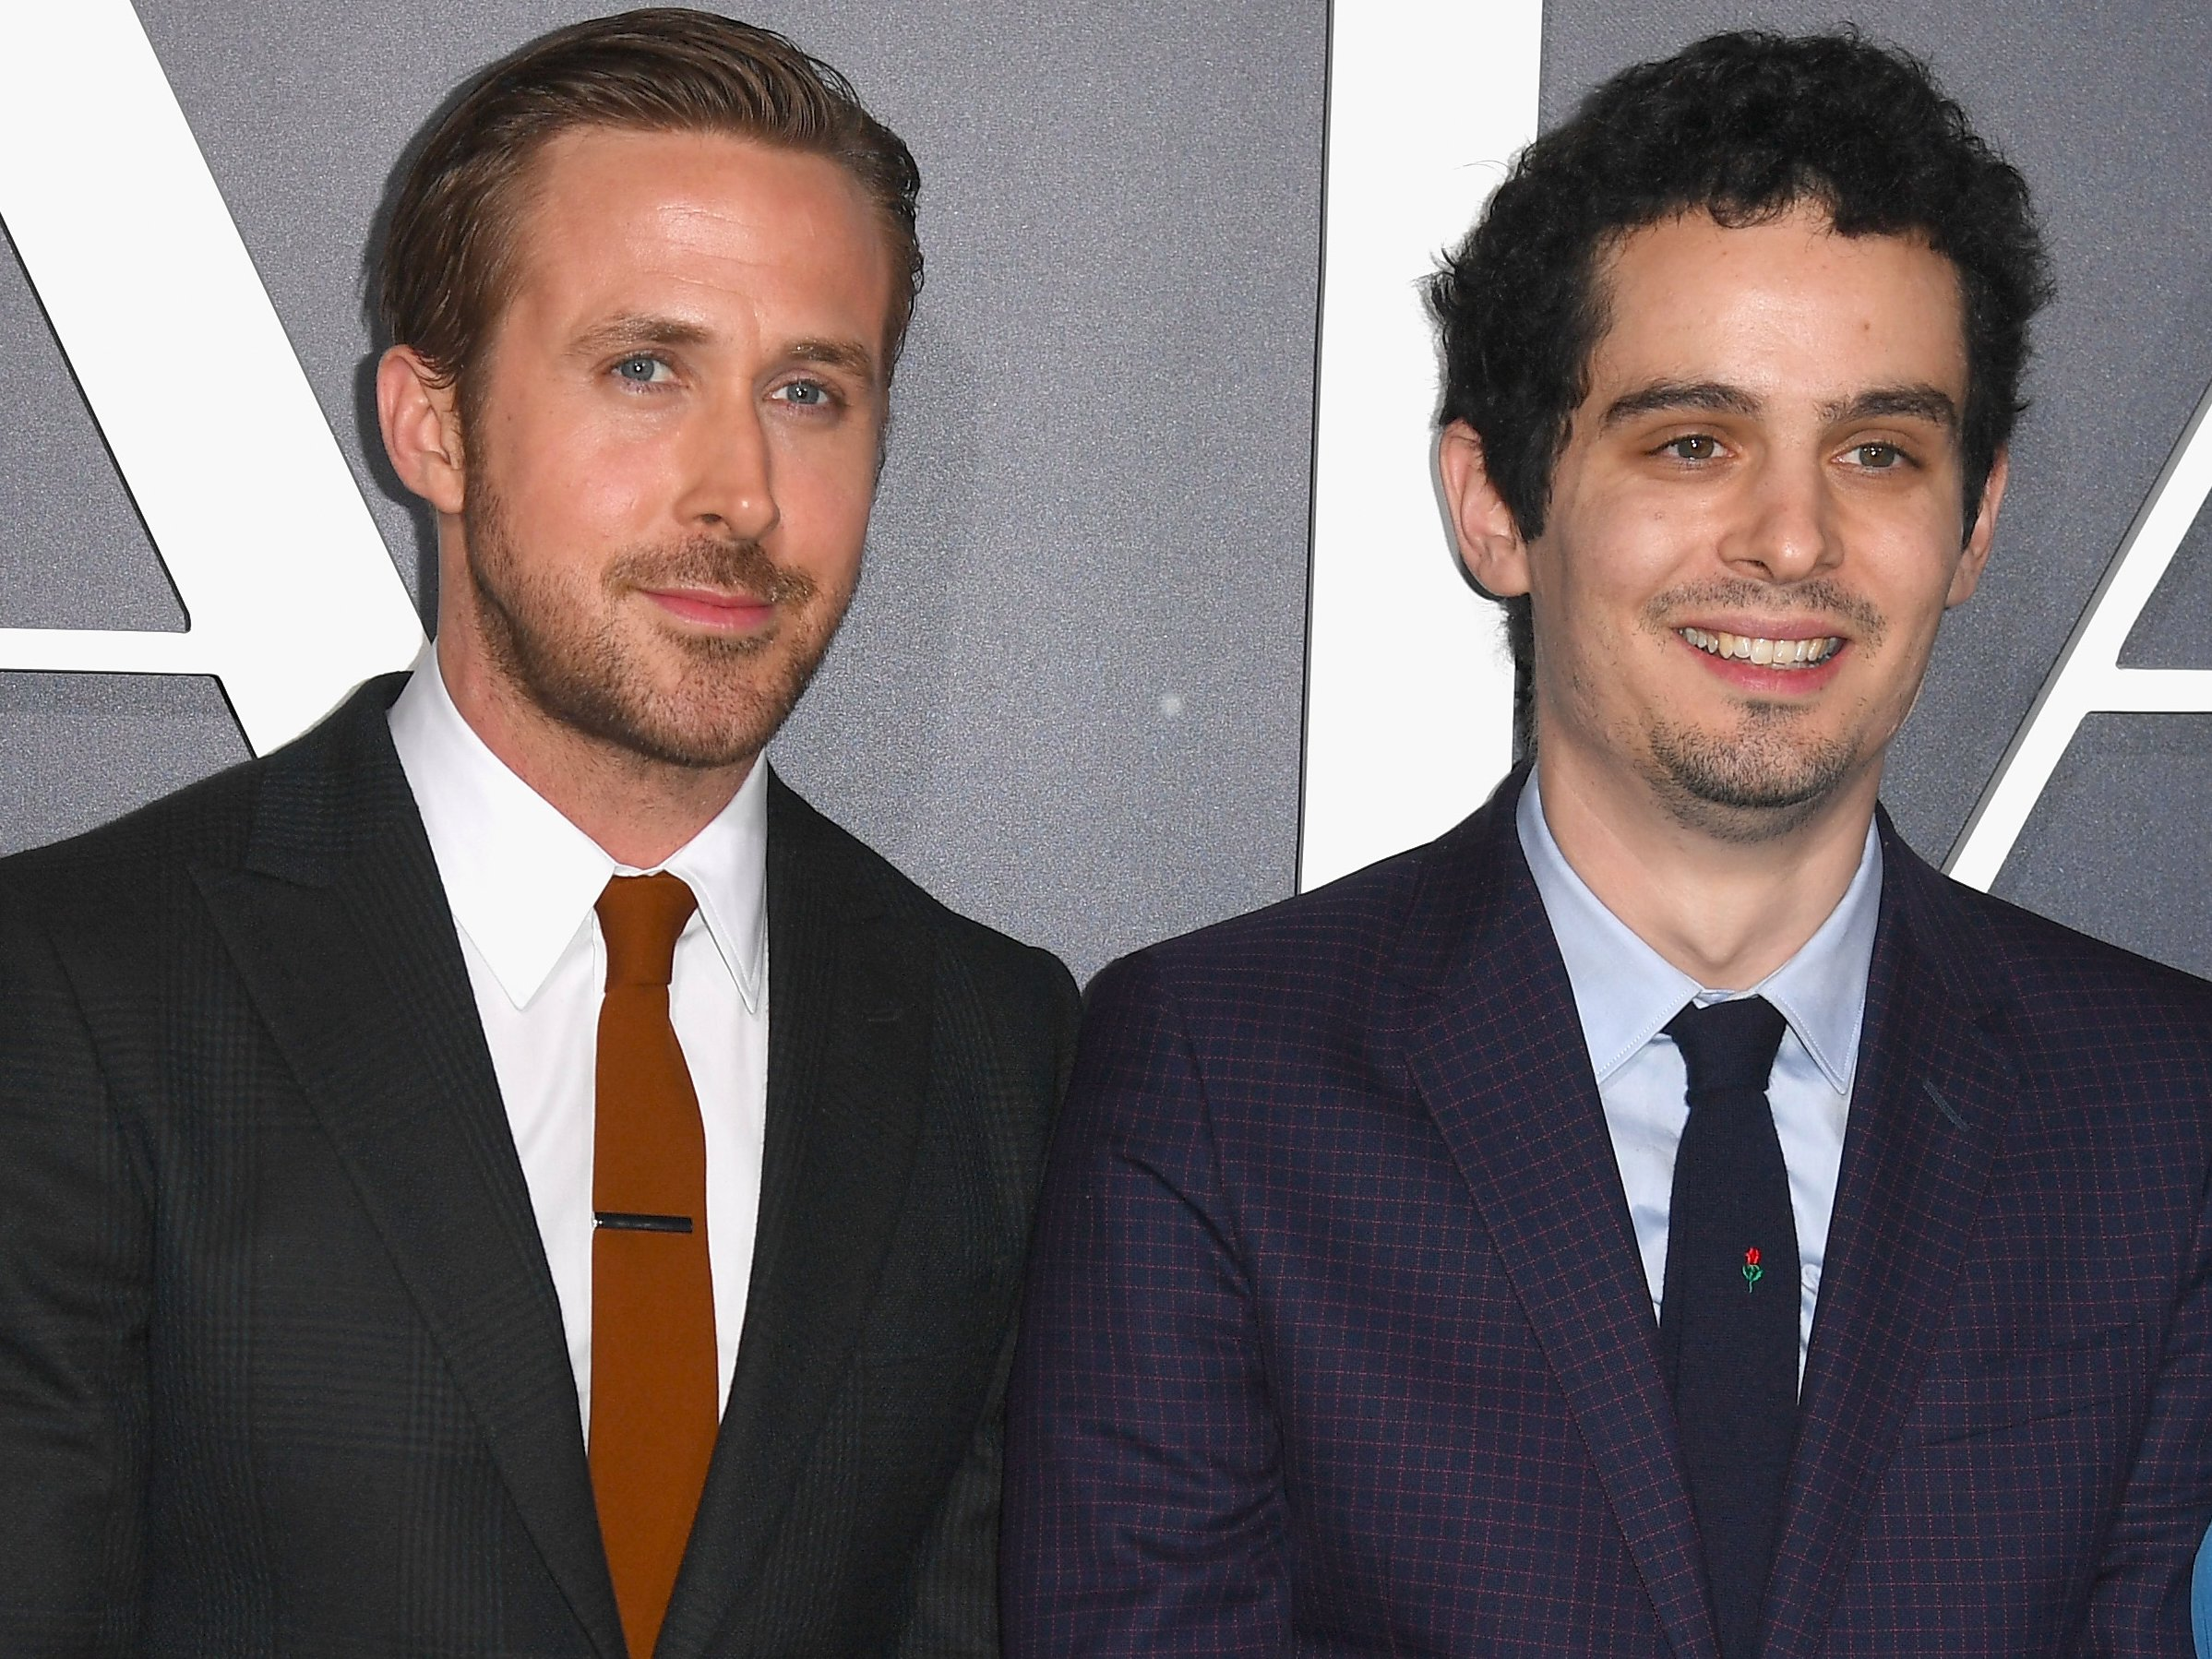 From James Hansenu0027s Biography Of The Same Name, The Film Will Be Adapted By  Spotlightu0027s Oscar Winning Cowriter Josh Singer And Follow The Story Of The  ...